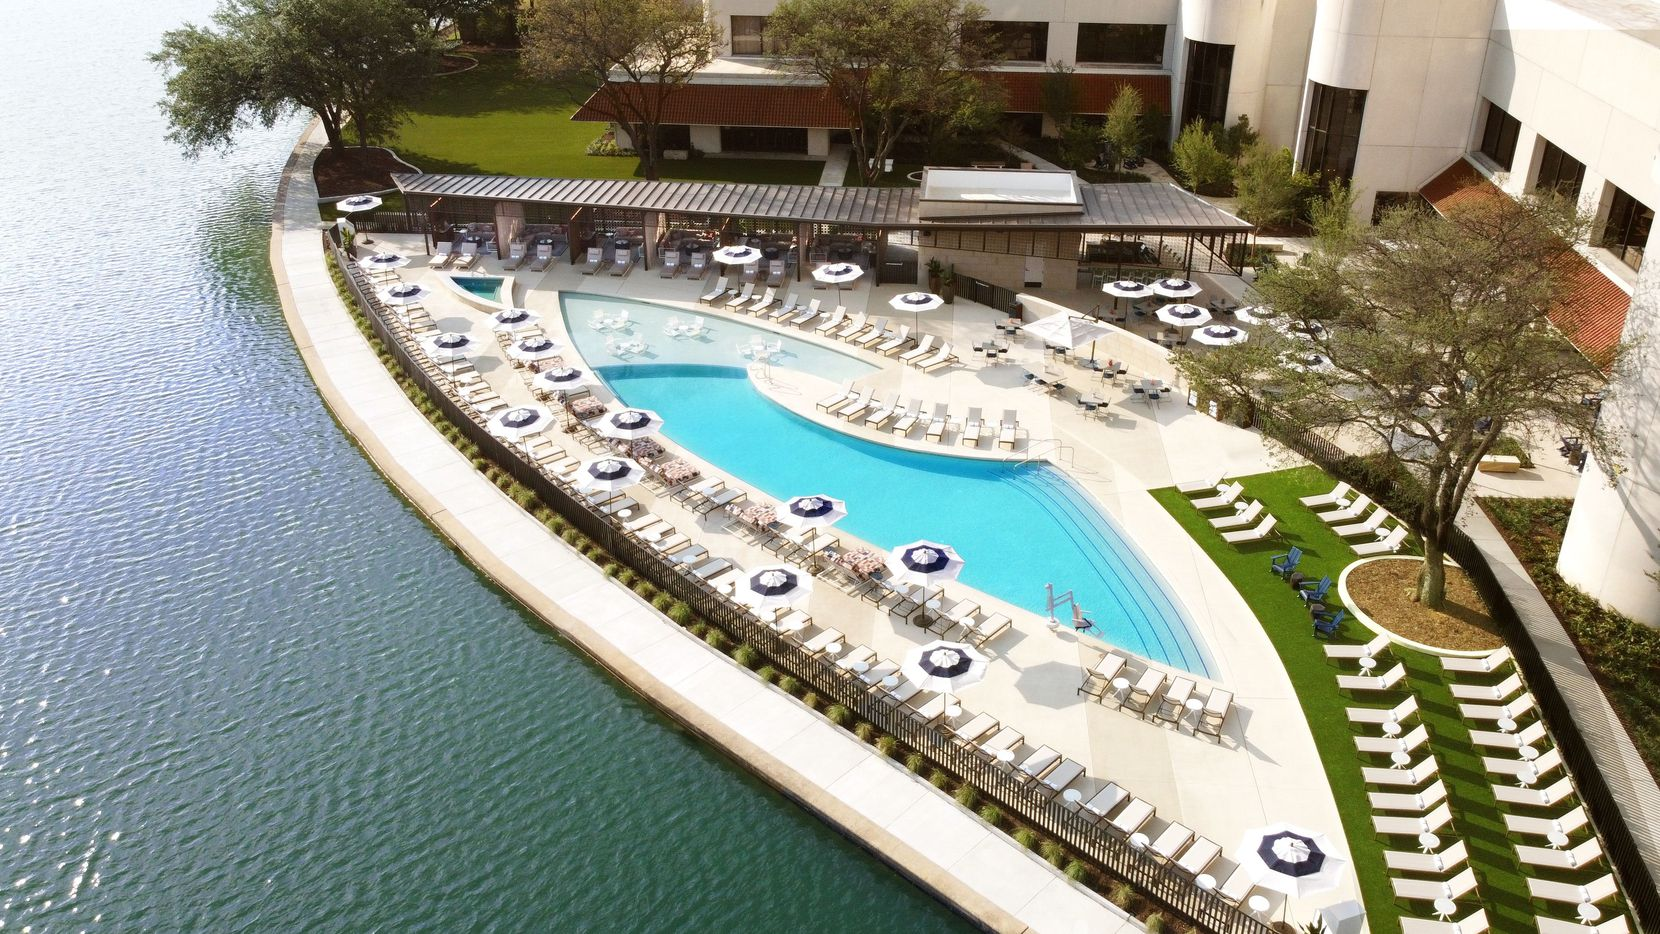 The Omni Las Colinas got a new pool area with bar and dining.